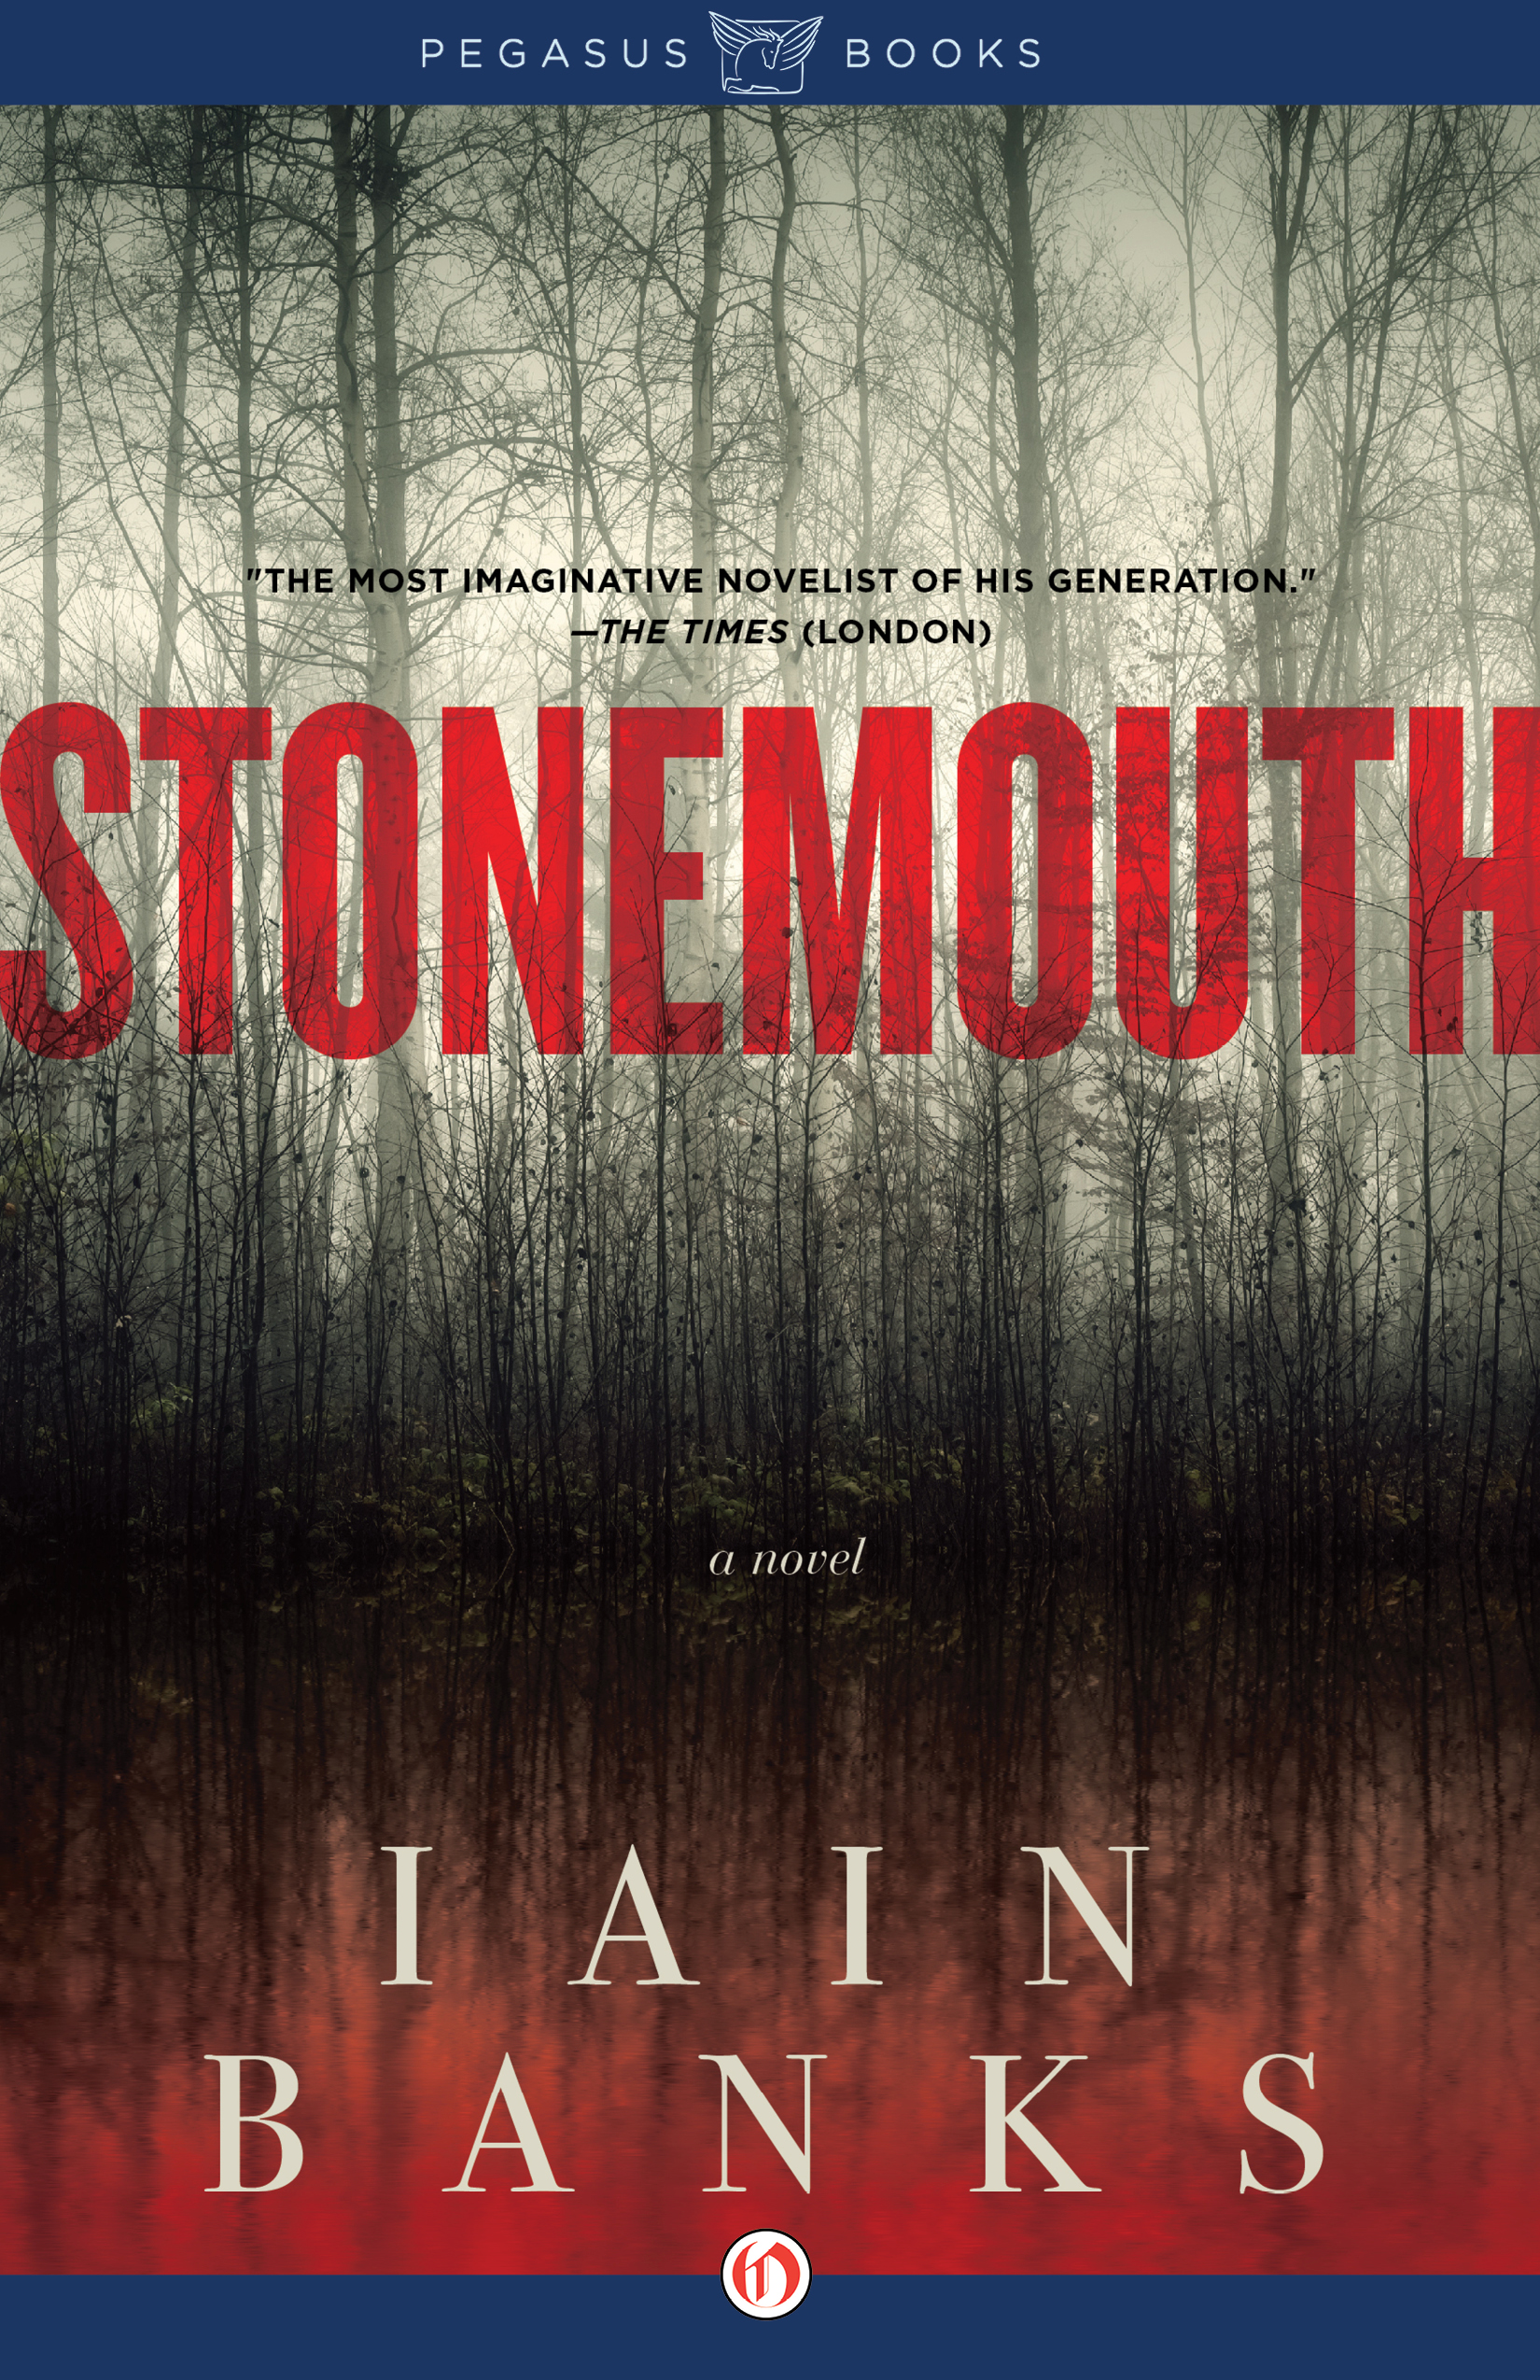 Stonemouth: A Novel By: Iain Banks